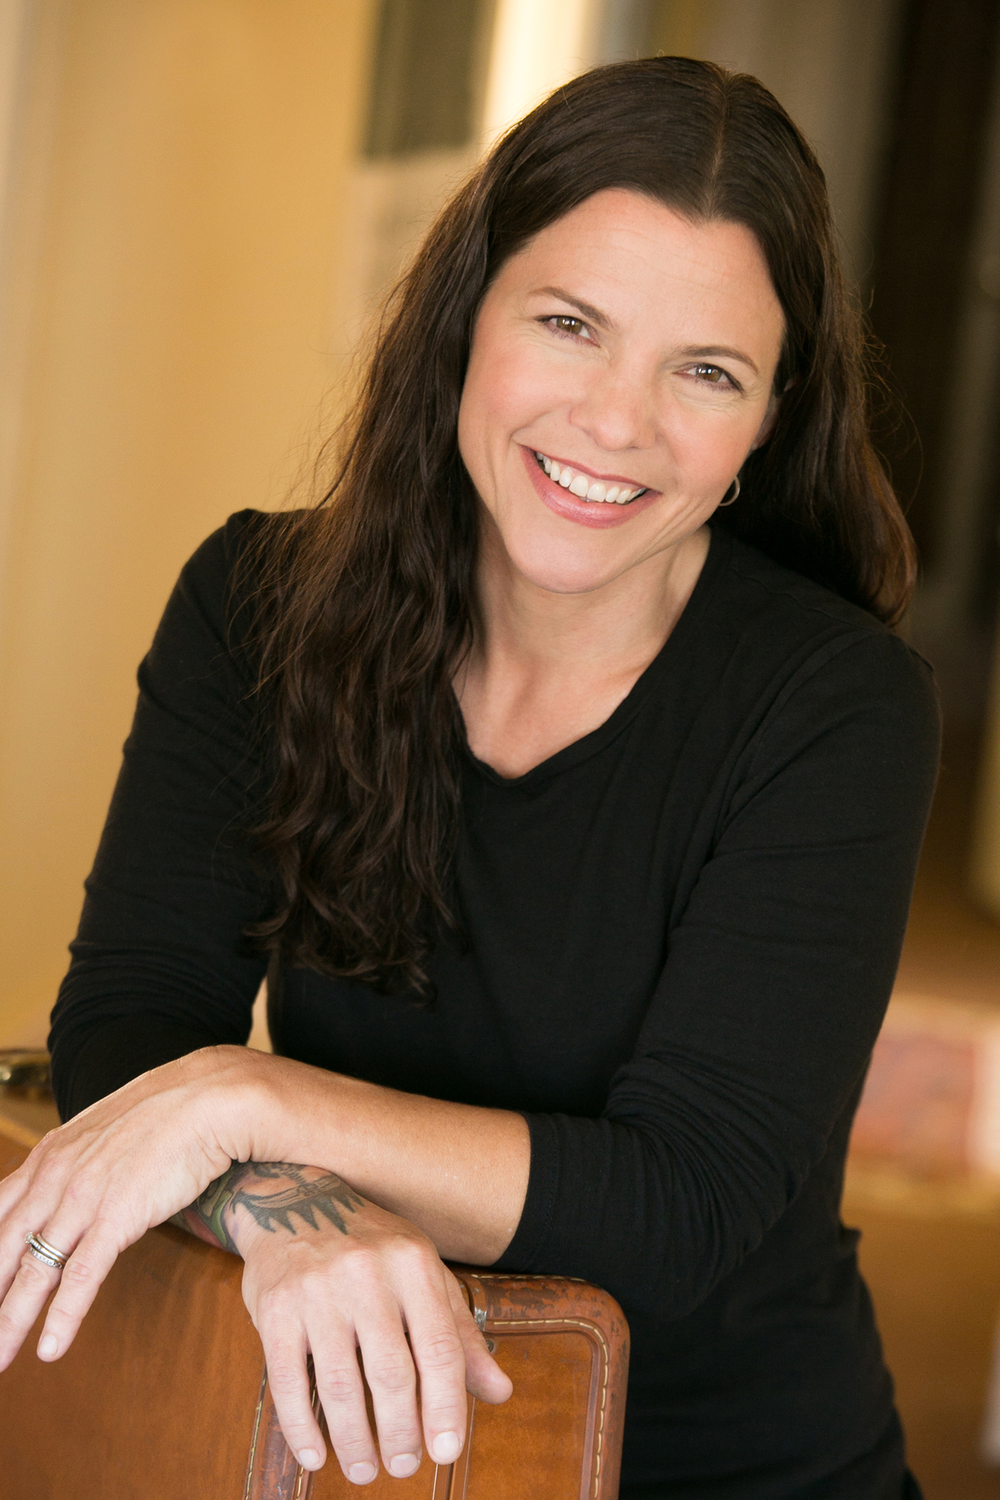 Valerie Agnew, Certified Massage Therapist